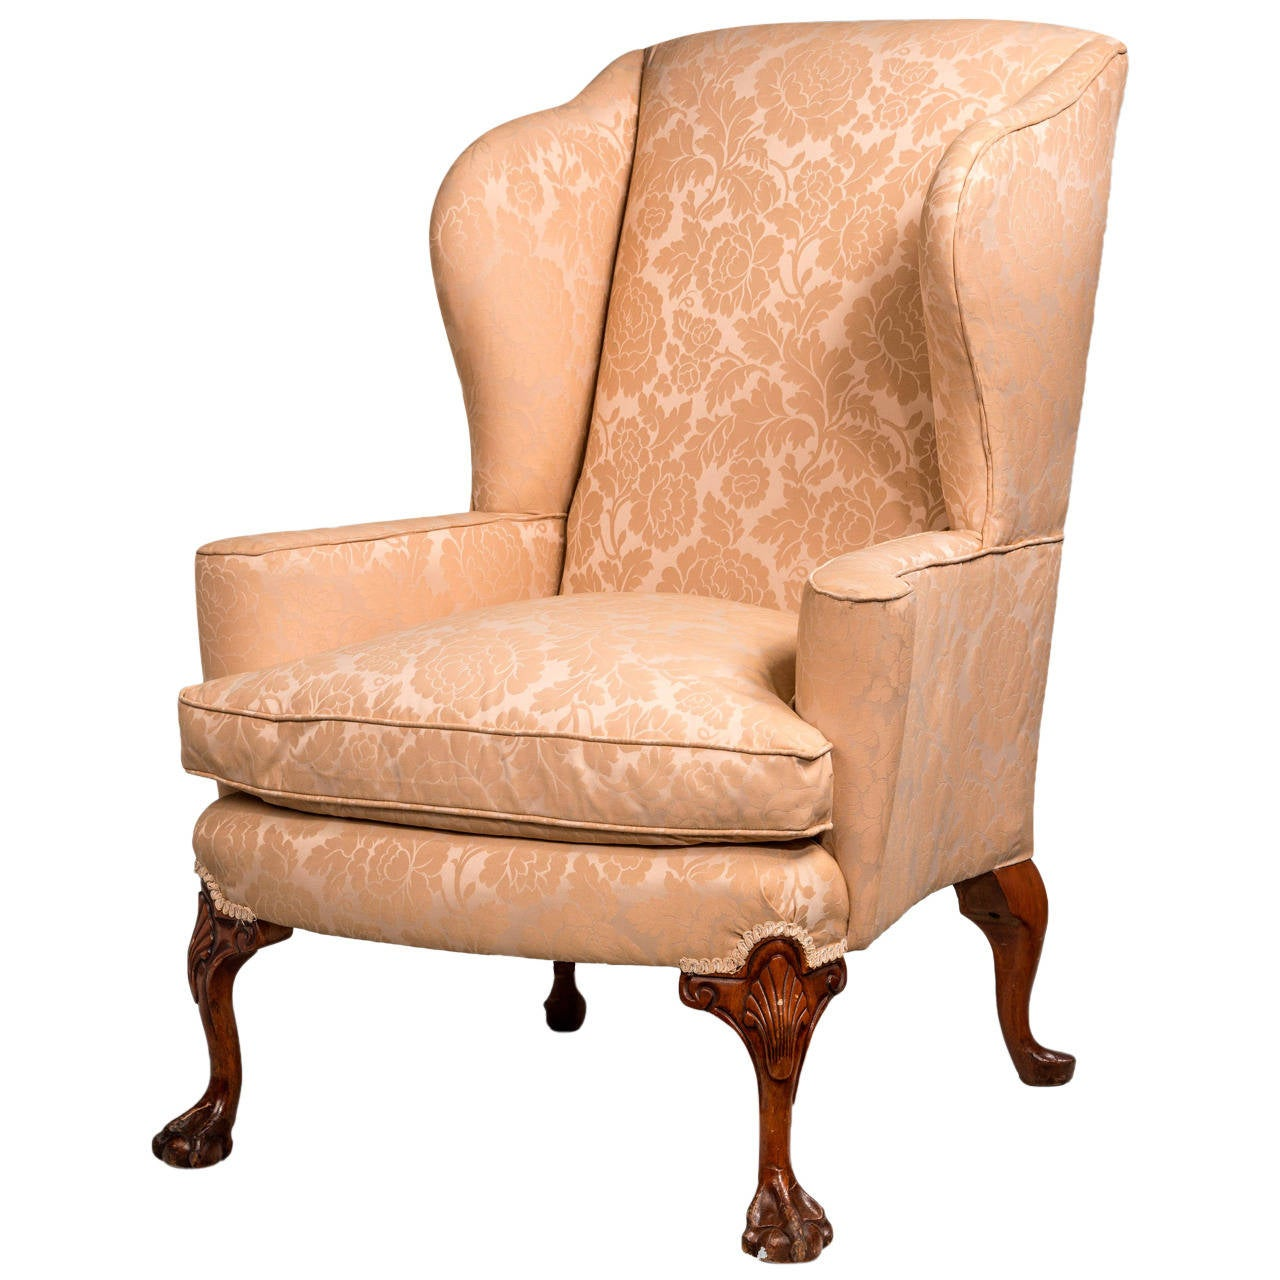 George II Design Walnut-Framed Wing Chair For Sale